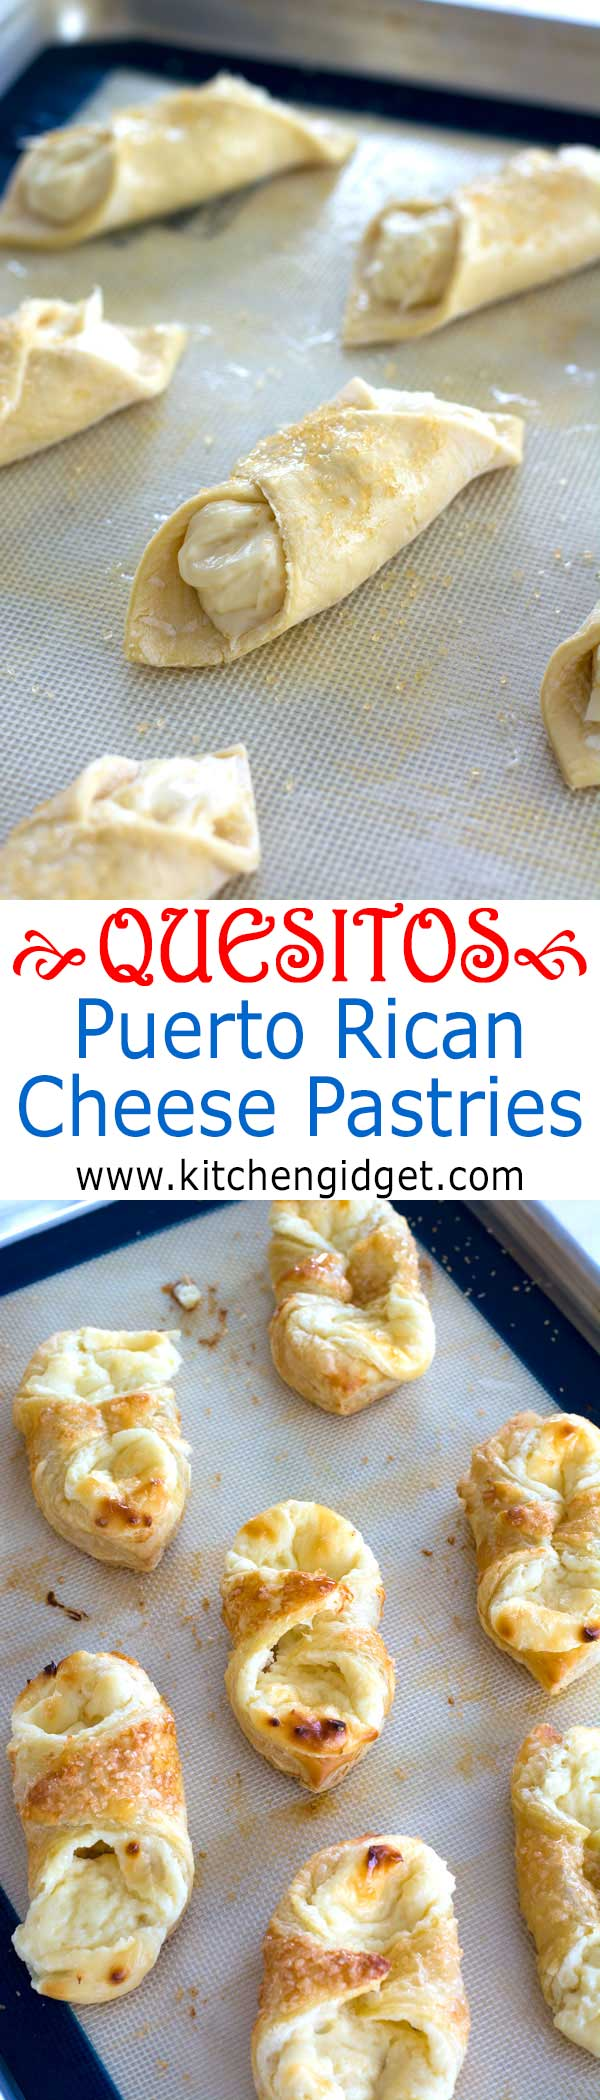 A quesitos recipe just like you find in Puerto Rican bakeries. Sweet cream cheese breakfast pastries in layers of light, crisp puff pastry!